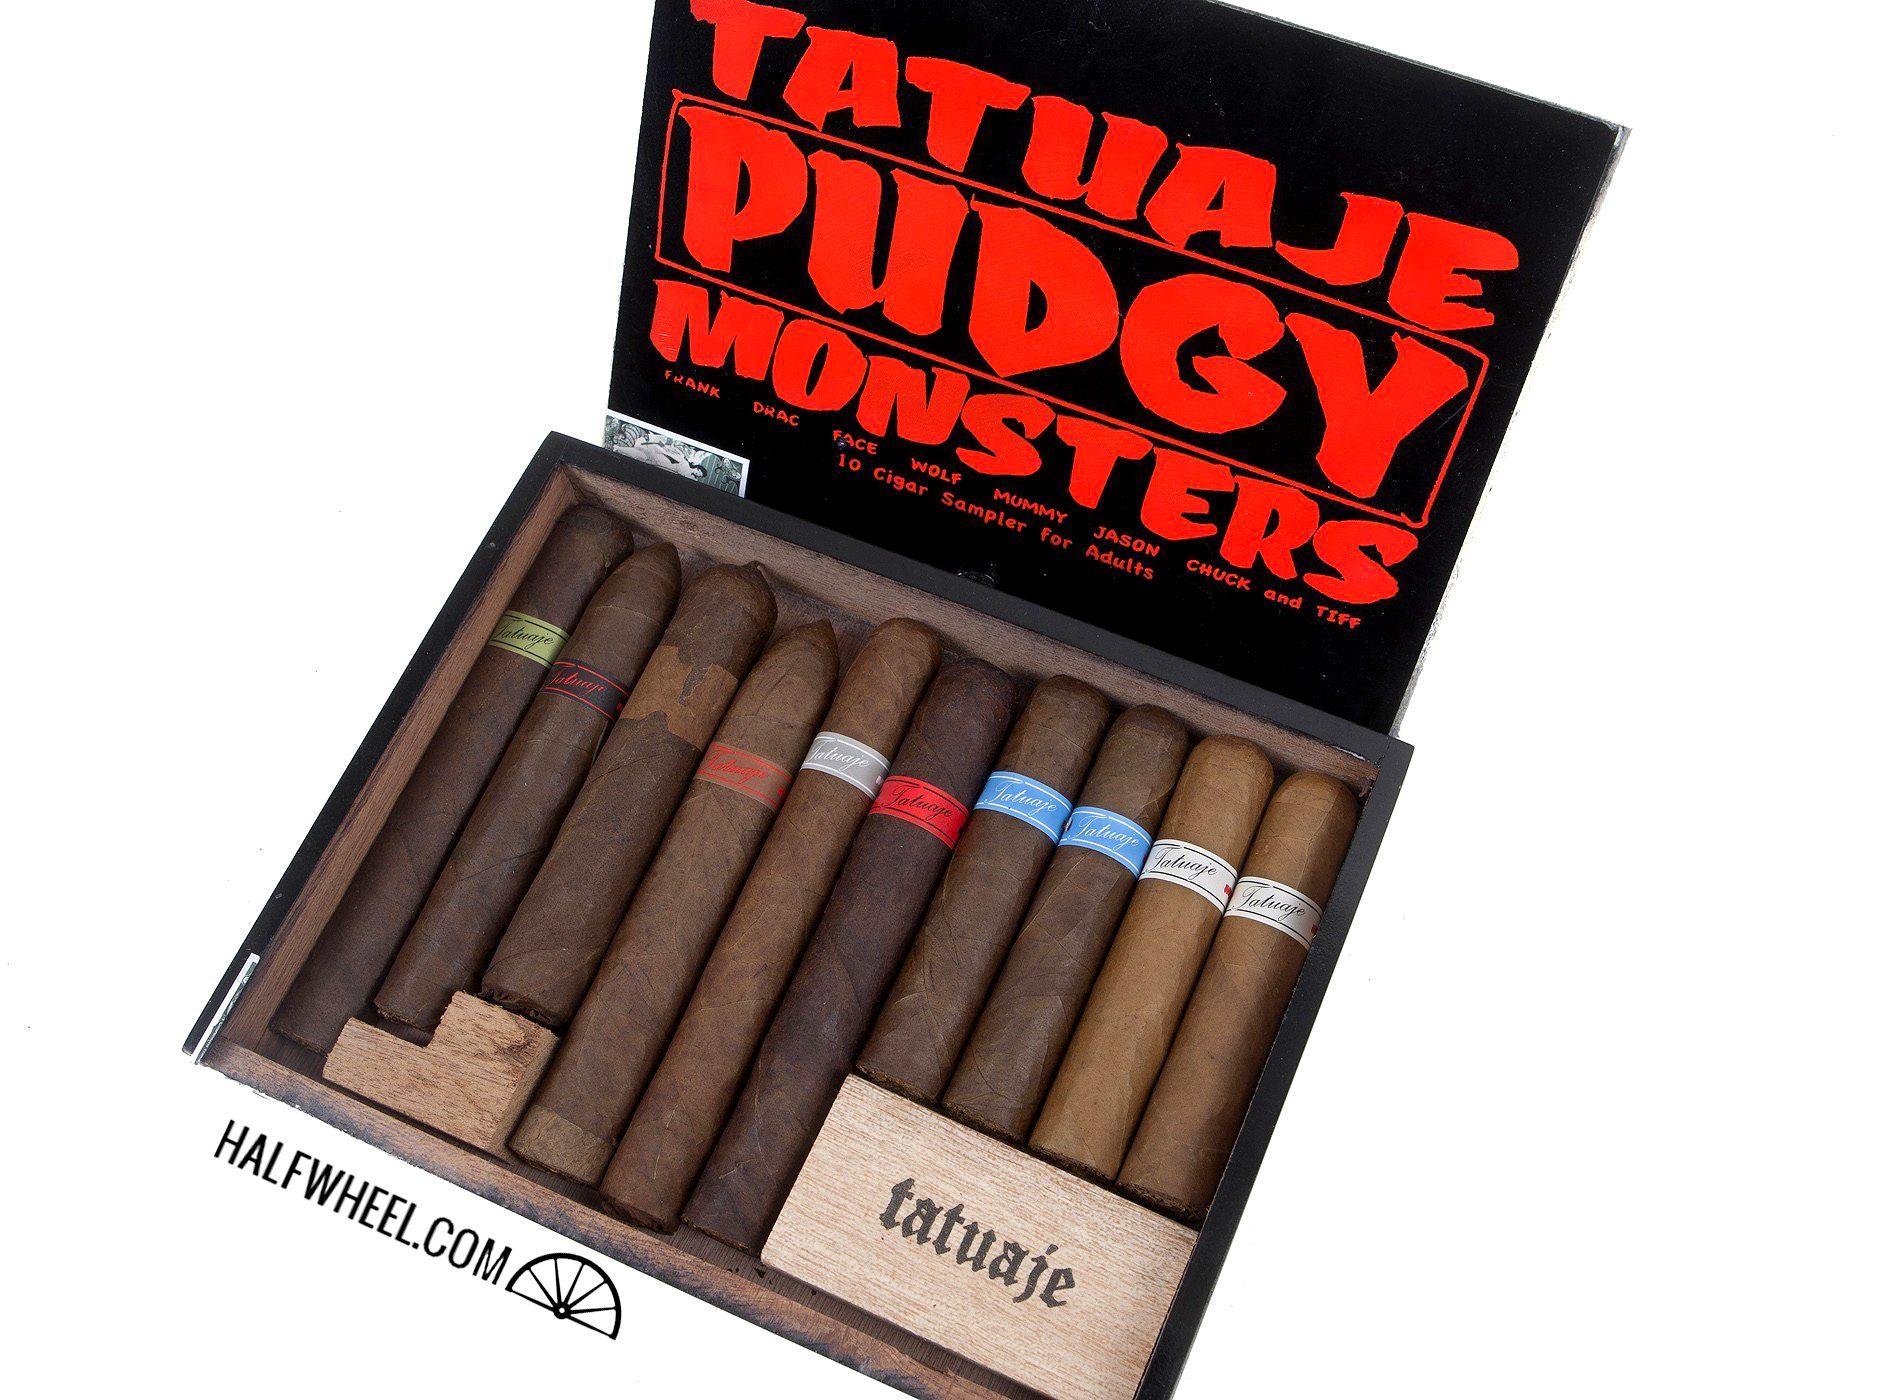 Tatuaje Pudgy Monsters Box 3